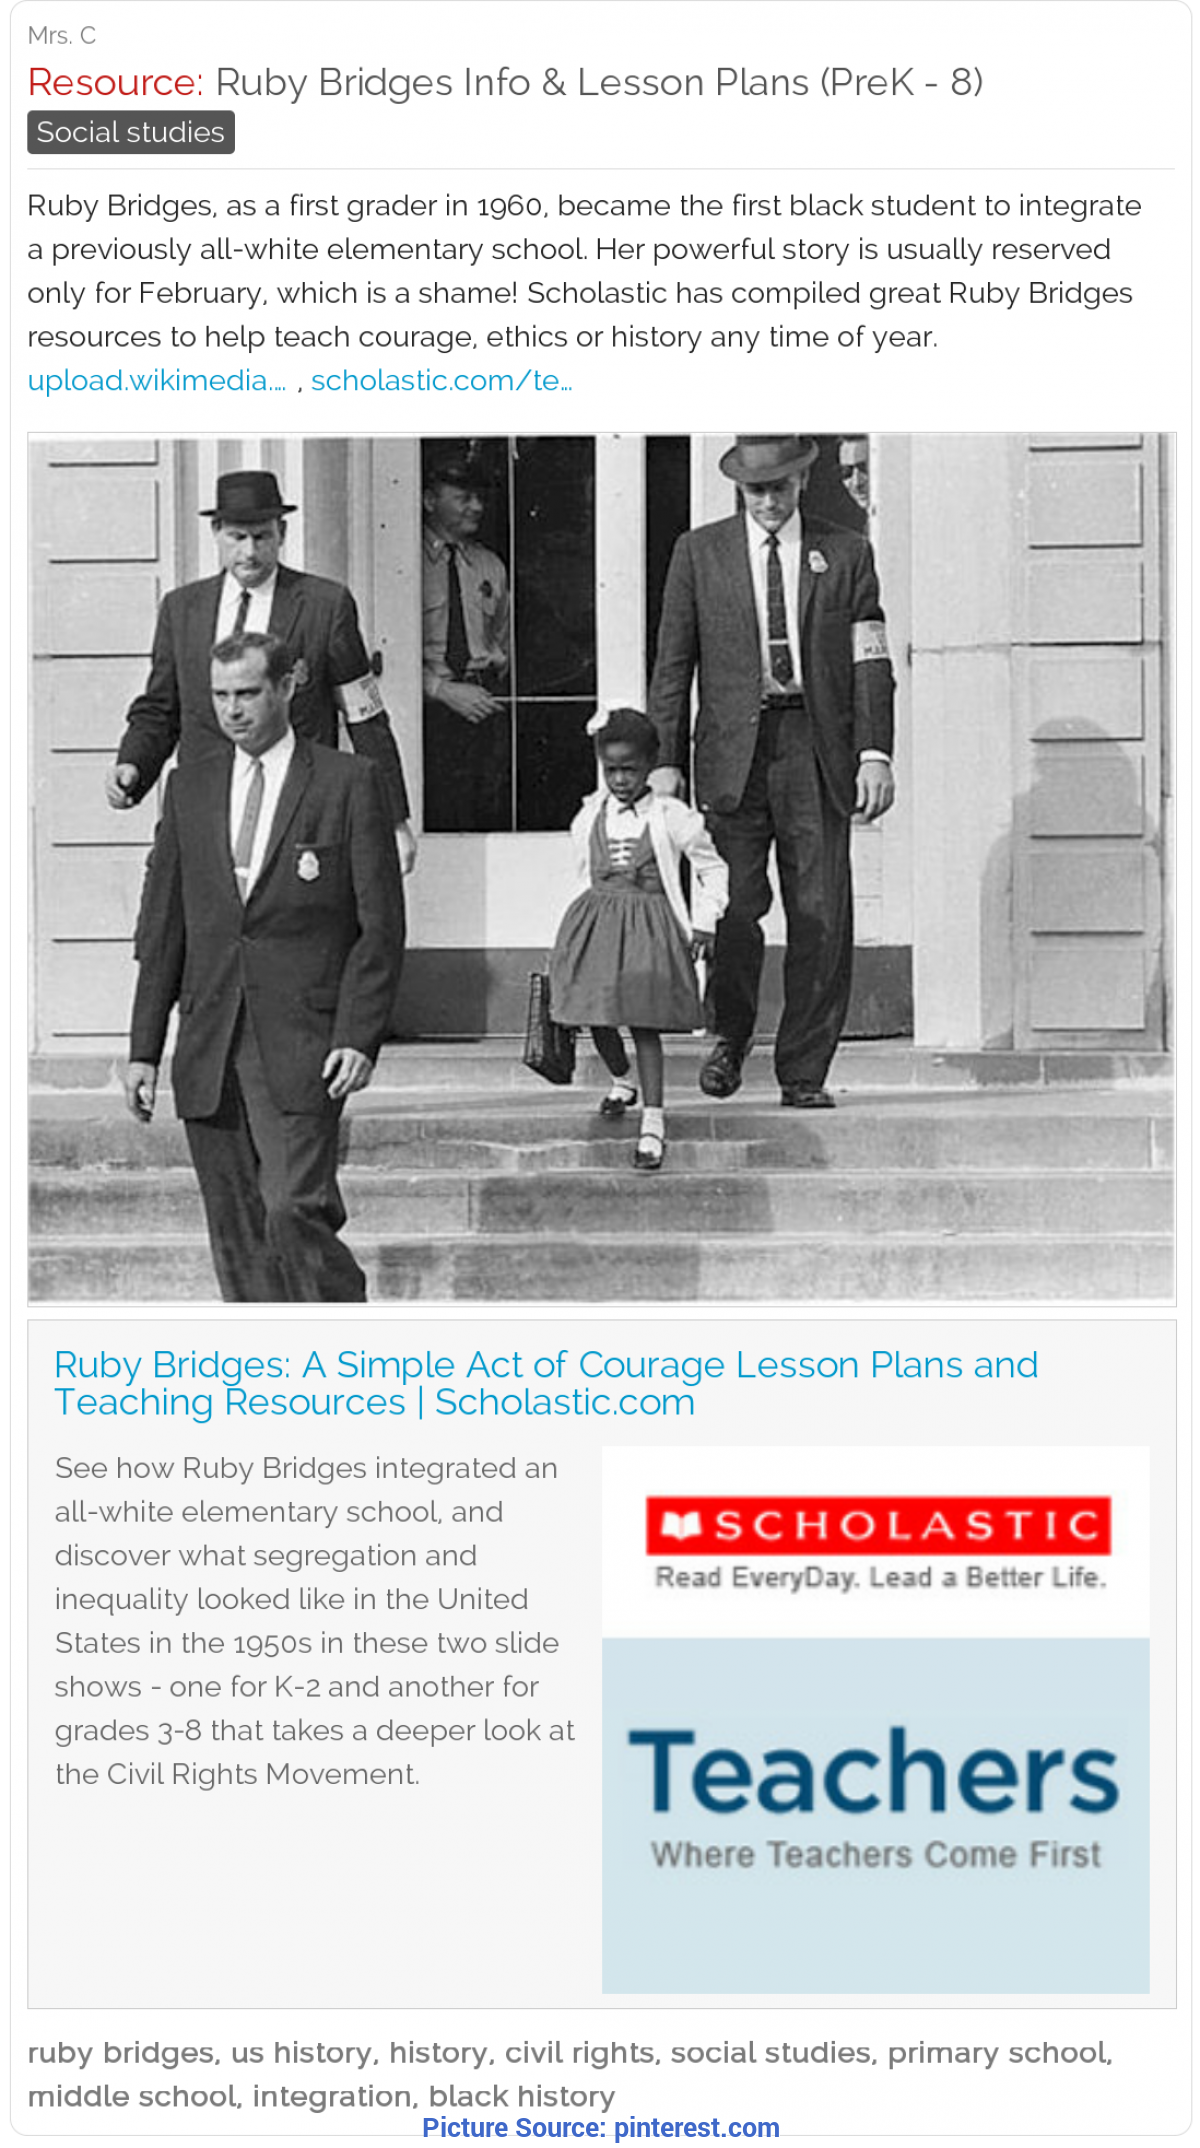 Useful Ethics Lesson Plans Free Ruby Bridges Lesson Plans (Prek - 8) - Scholastic Ha